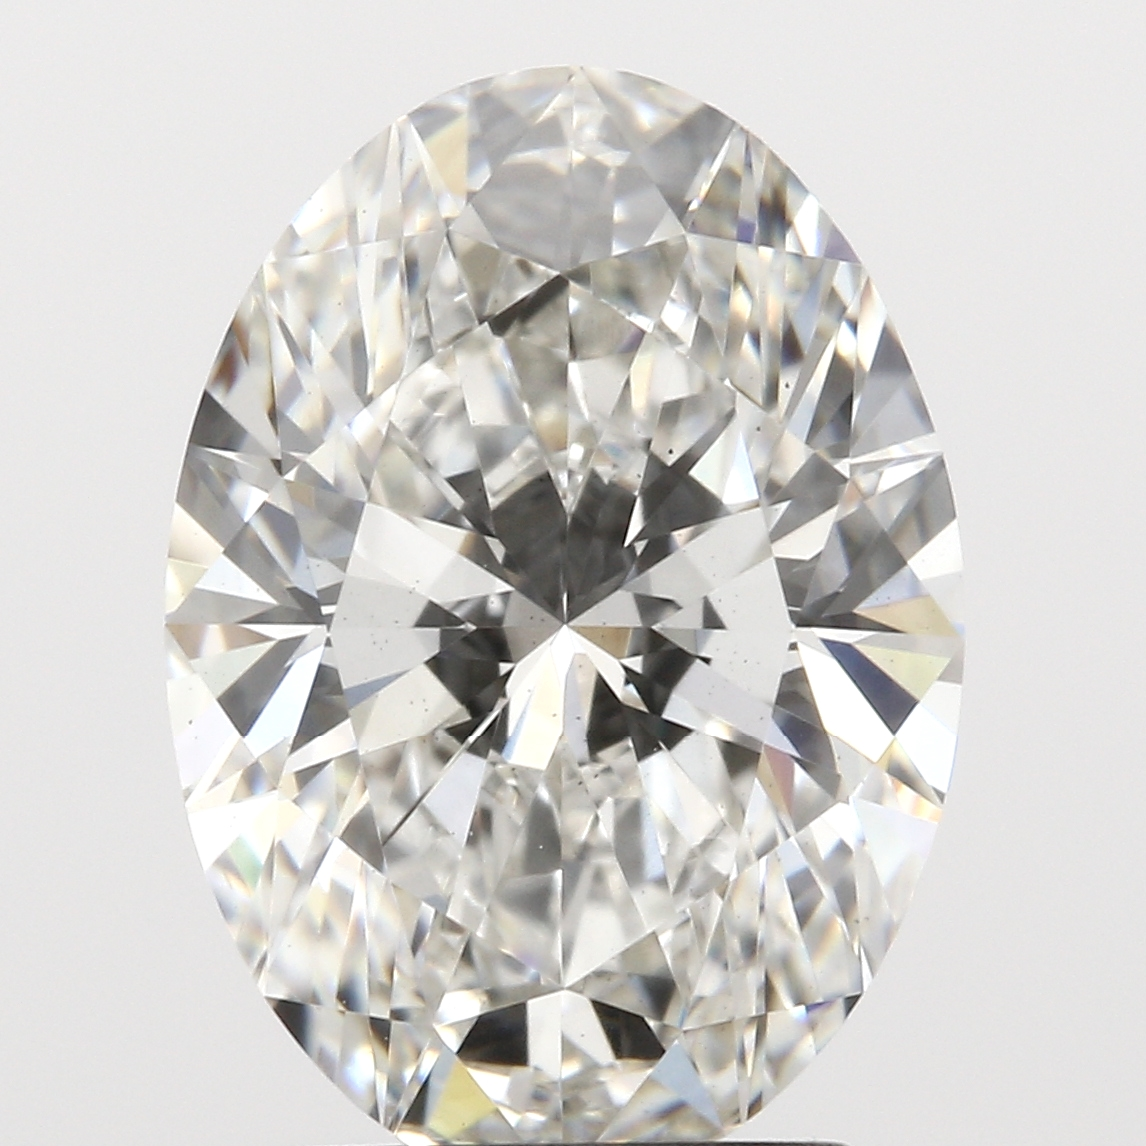 Oval Cut 2.23 Carat G Color Vs2 Clarity Sku Lg47241330